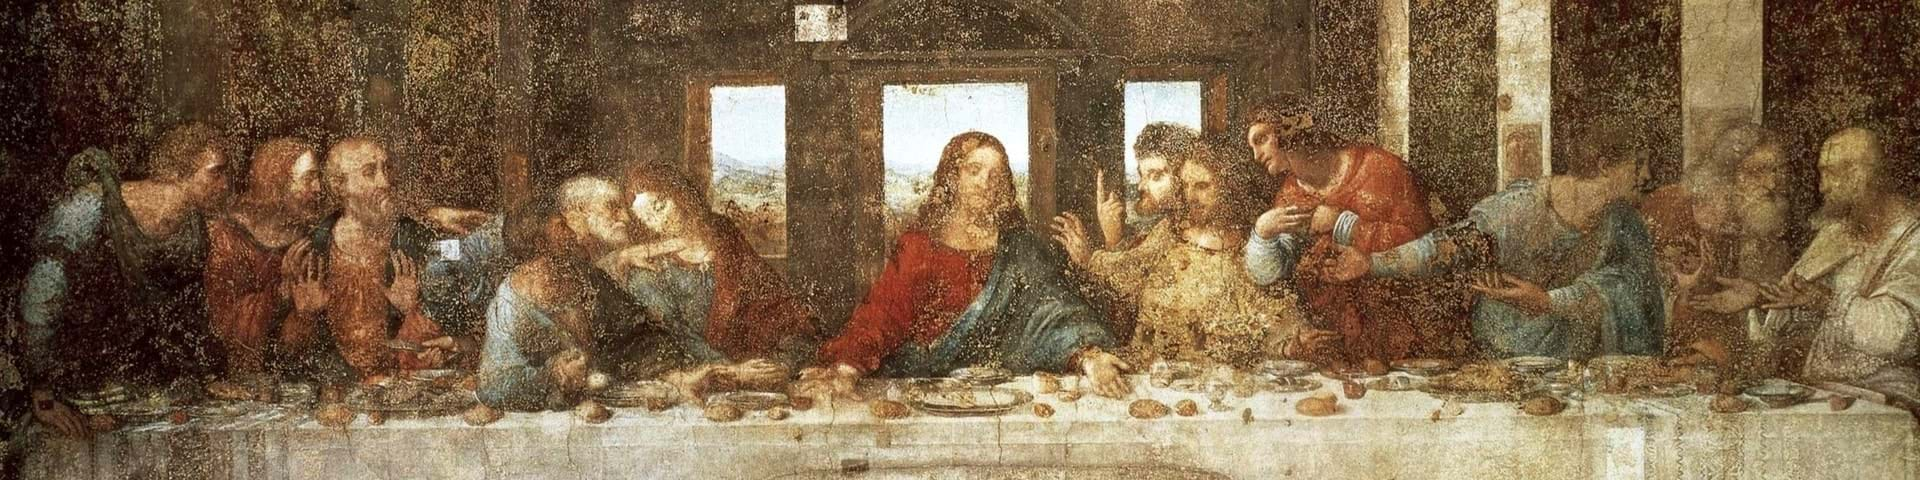 The Last Supper Tours & Tickets